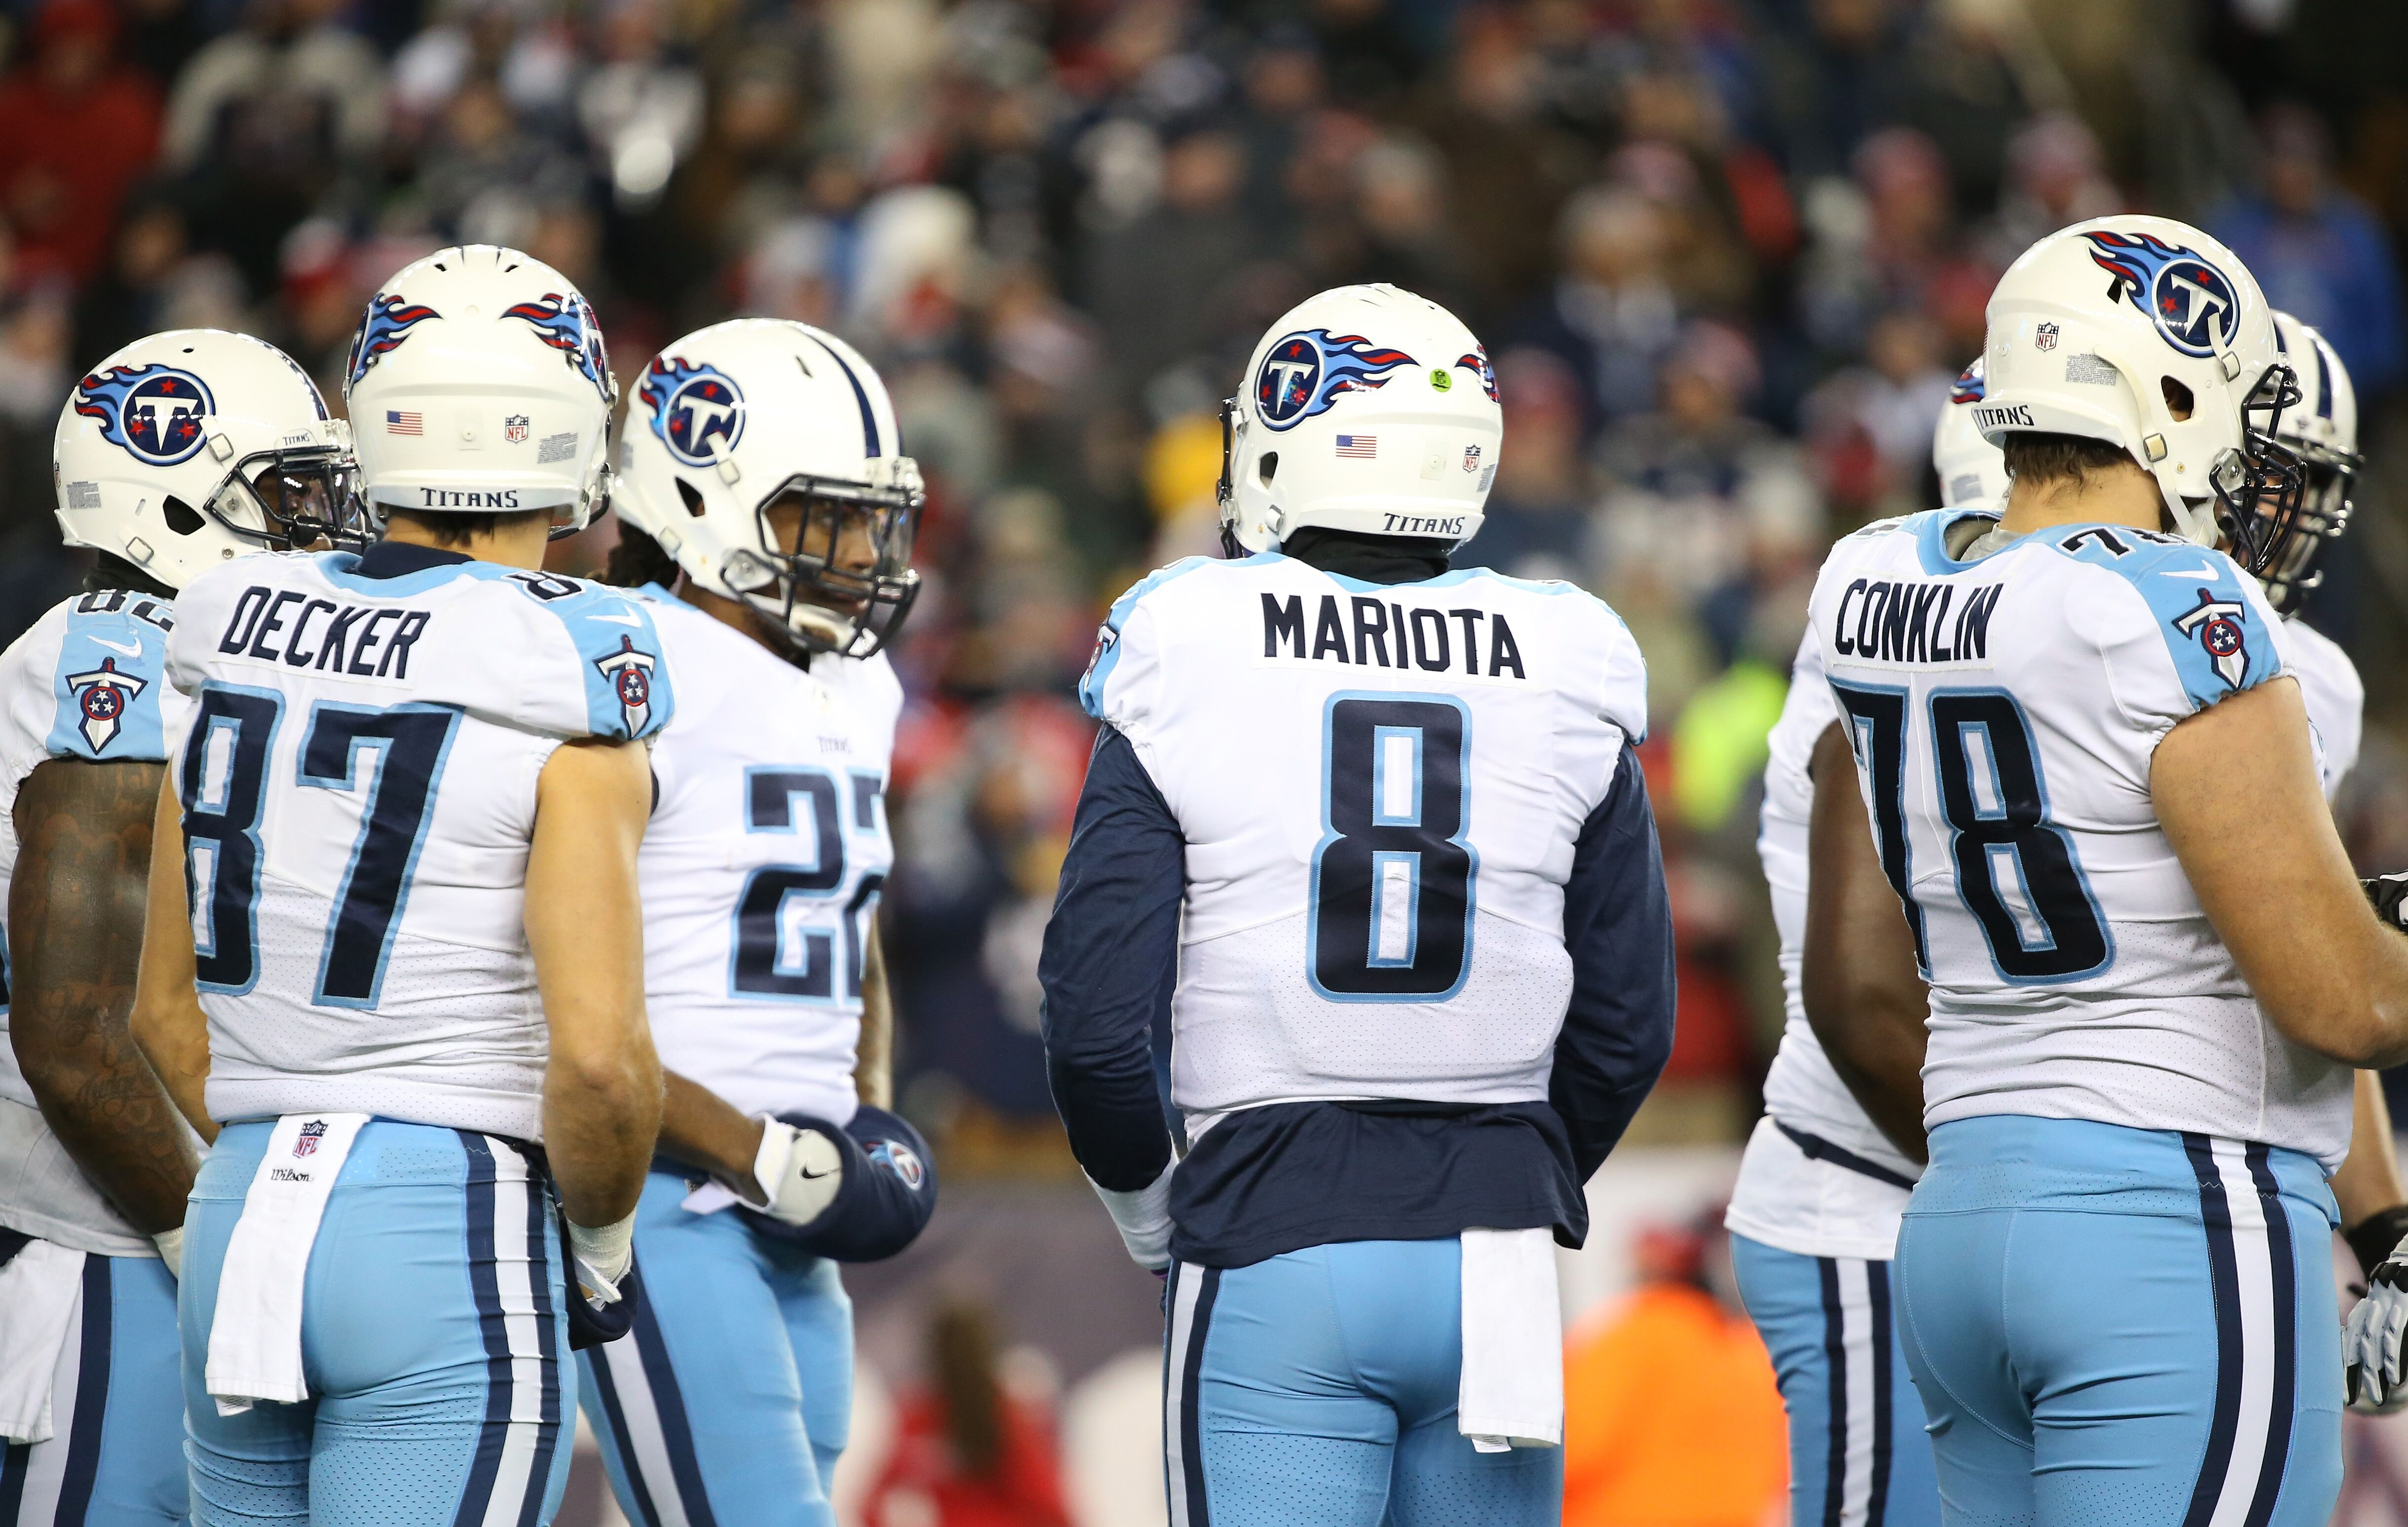 904634498-divisional-round-tennessee-titans-v-new-england-patriots.jpg